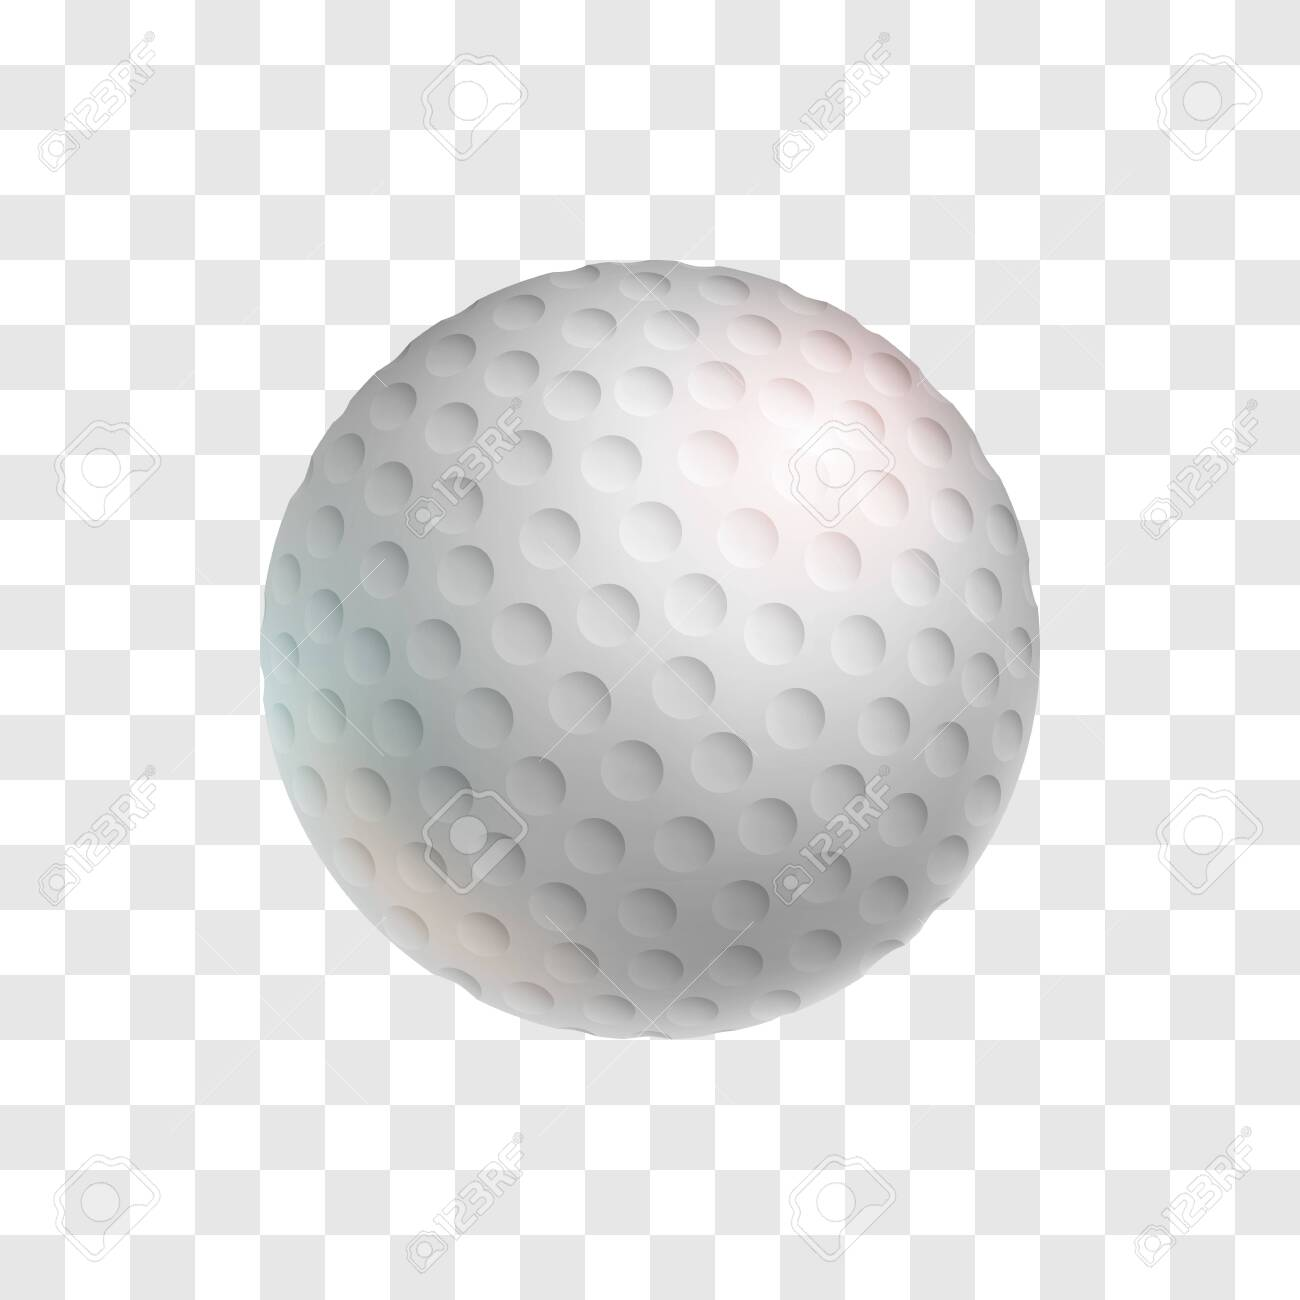 Realistic White Golf Ball Isolated On Transparent Background Royalty Free Cliparts Vectors And Stock Illustration Image 141607329